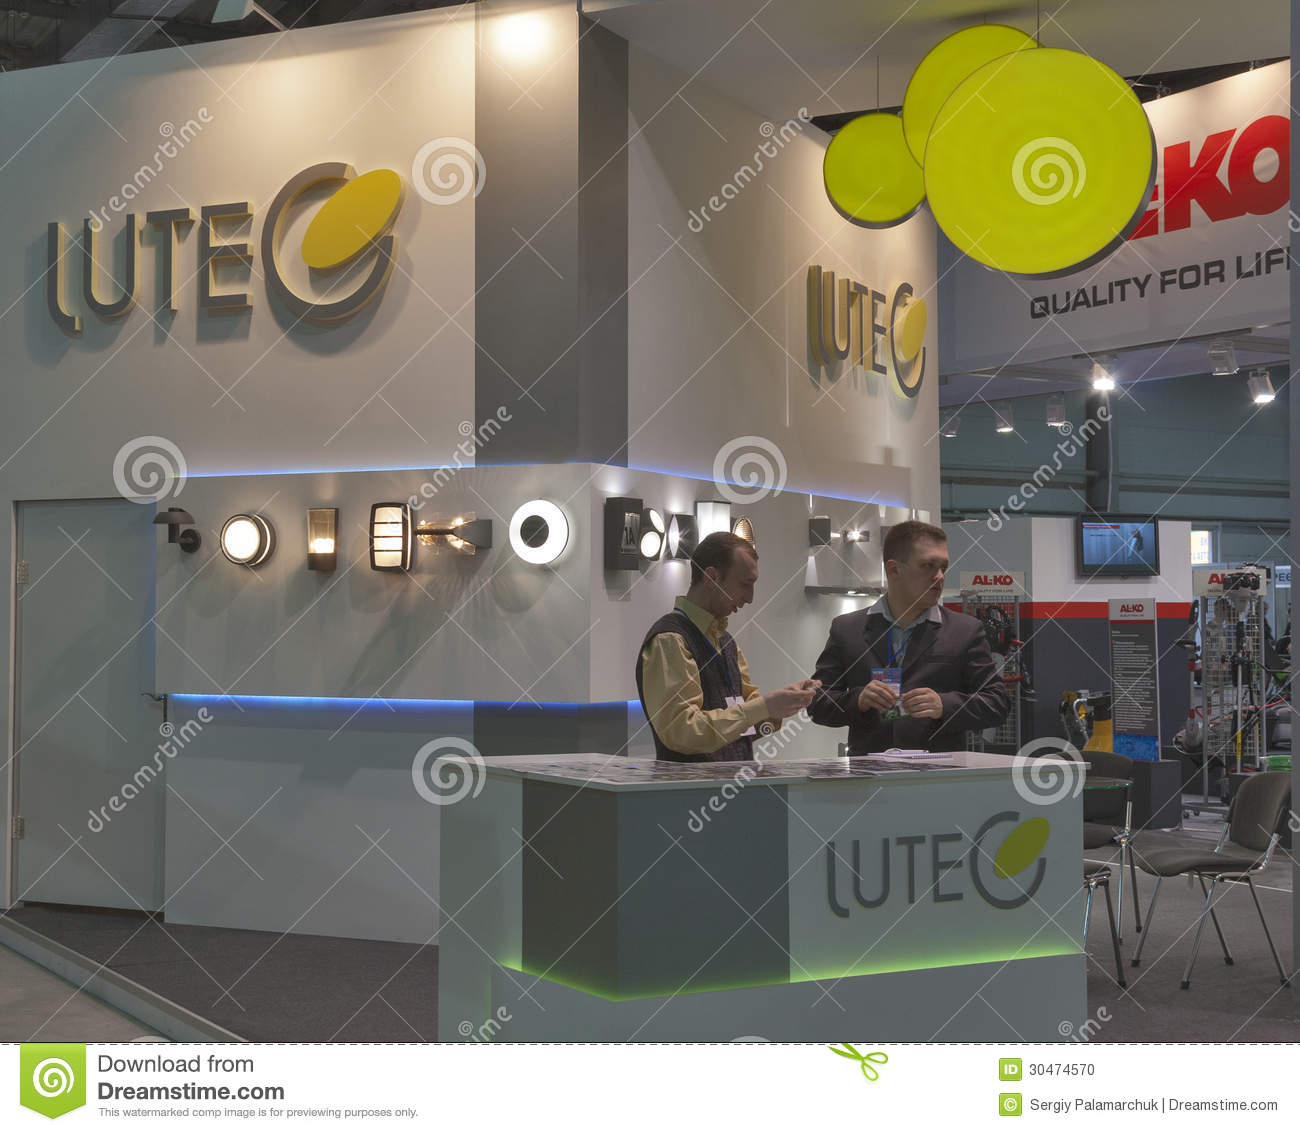 Exhibition Booth Clipart : Lutec australian company booth editorial image